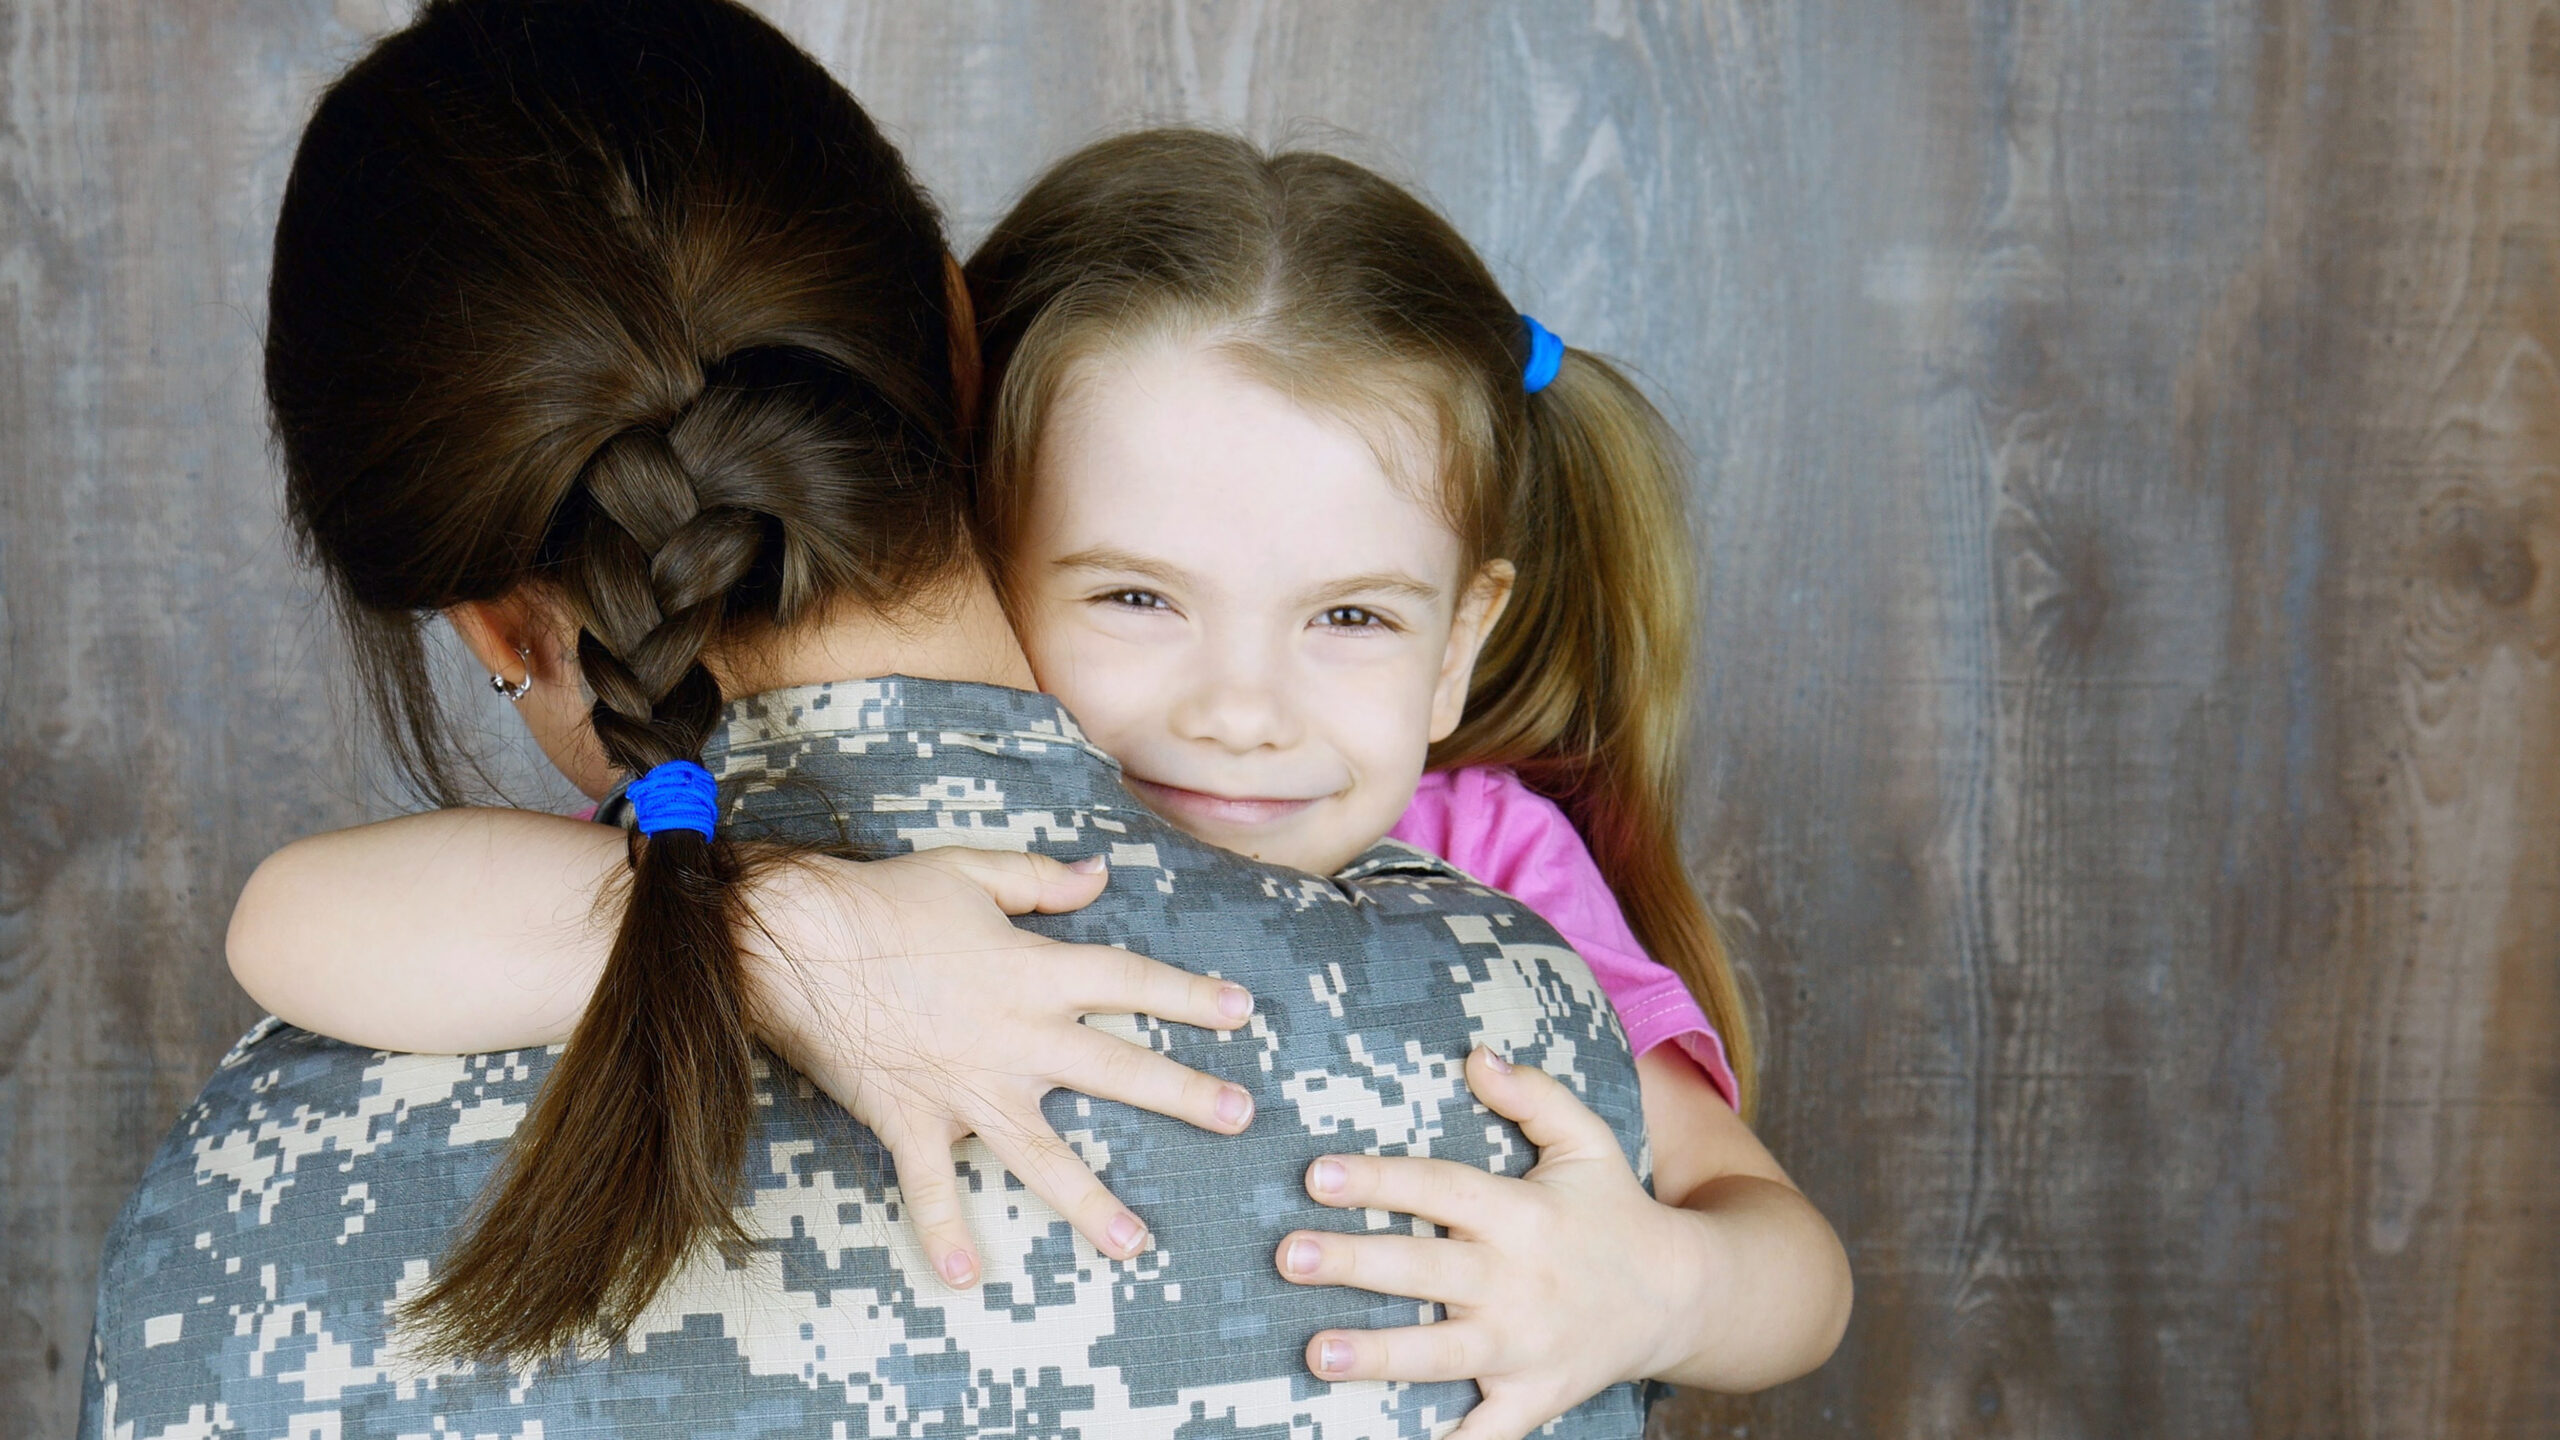 Trauma and Resiliency in Military Families, with Dr. Stephen Cozza